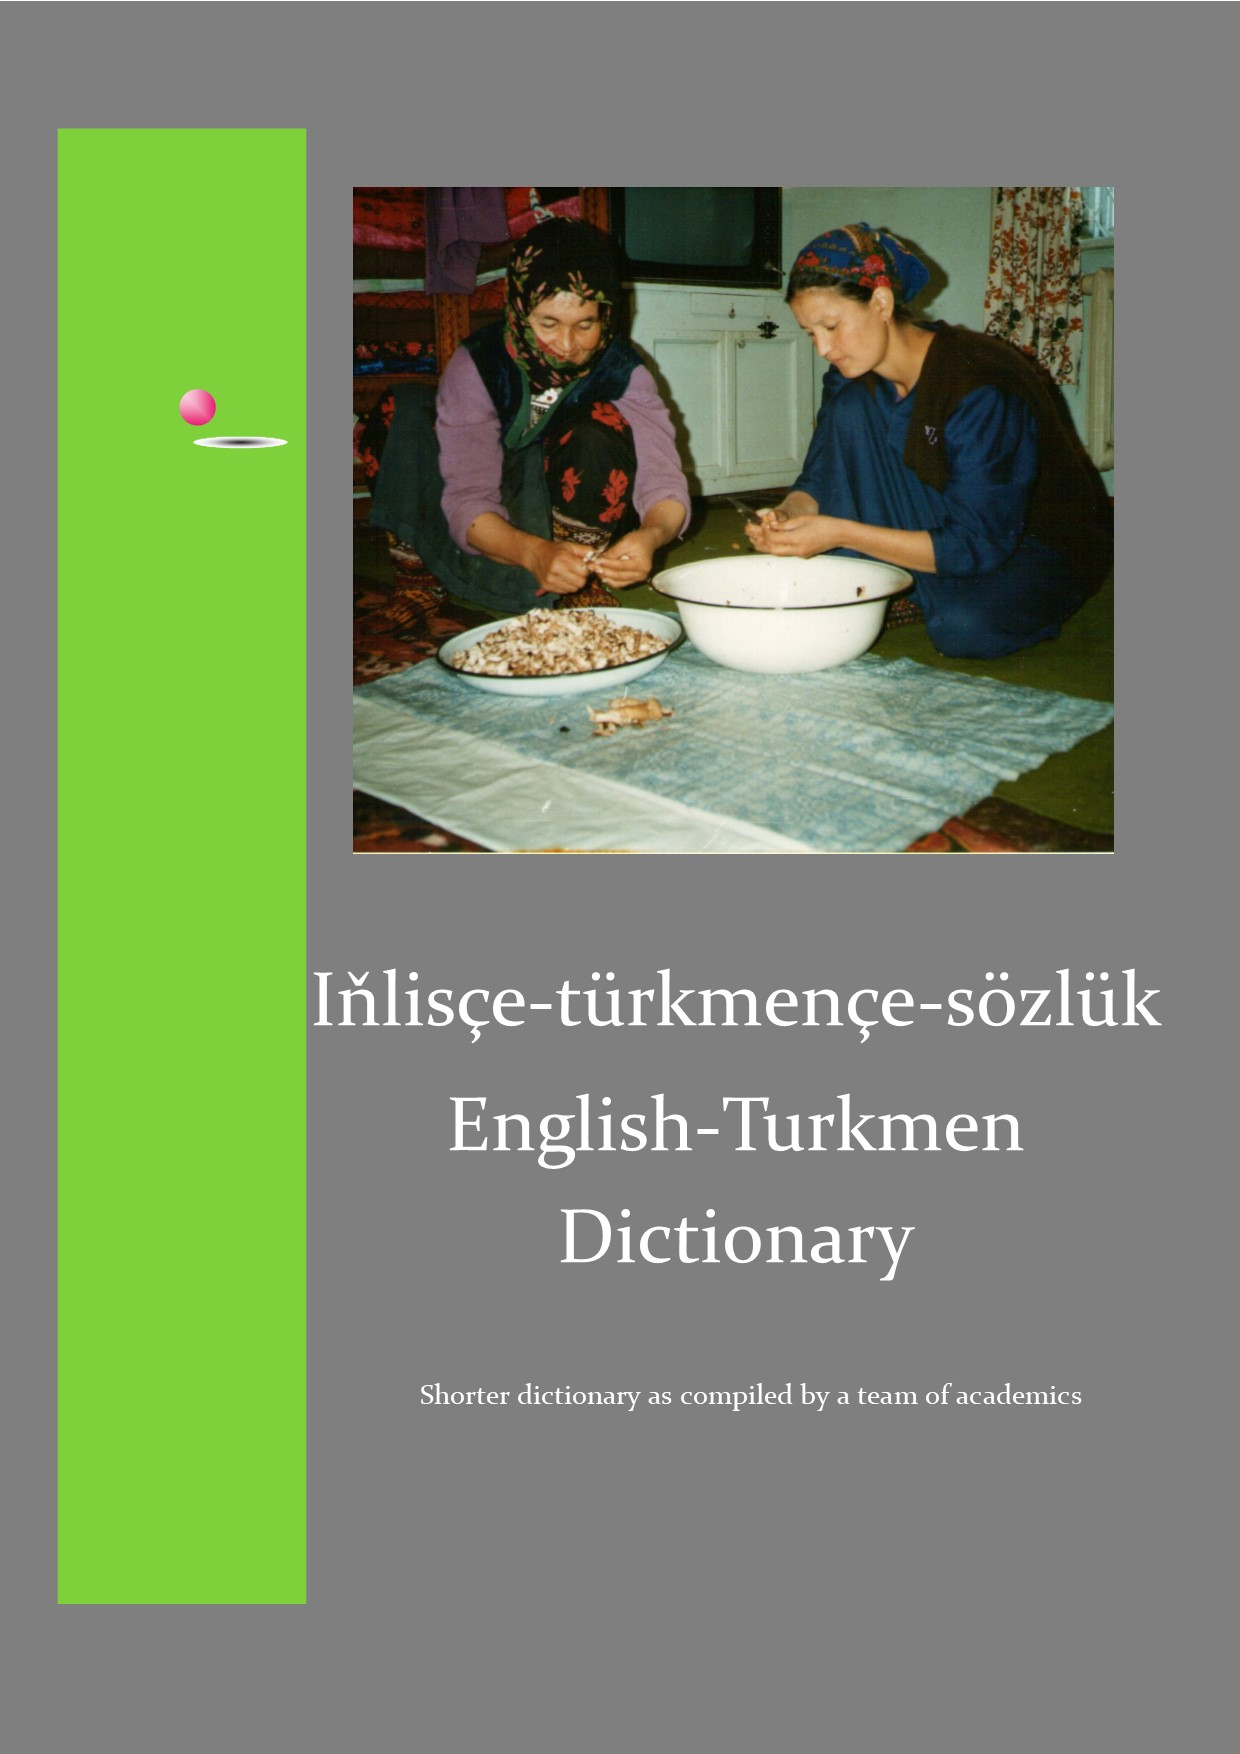 cover page of dictionary